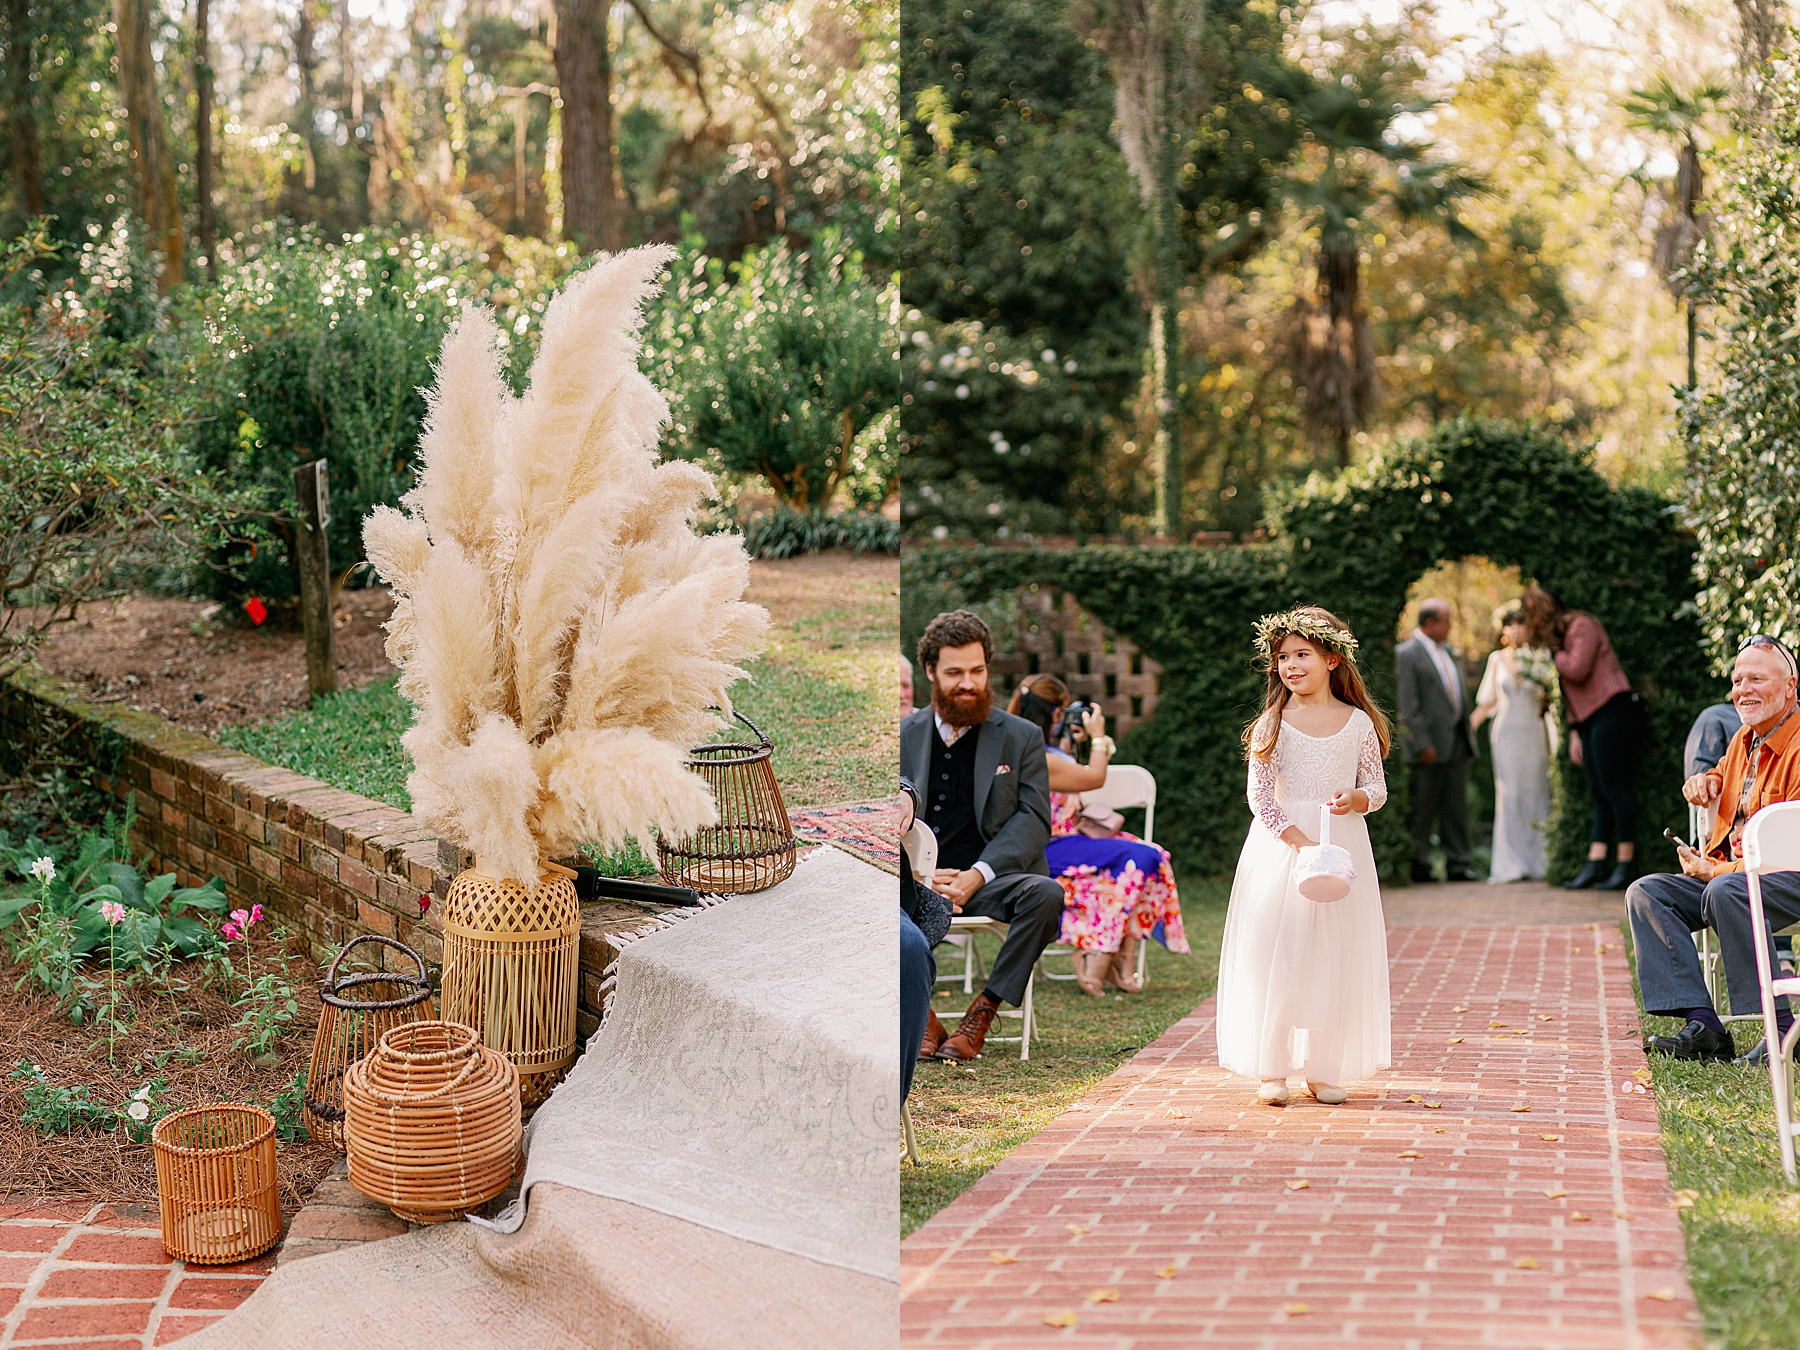 Details of pampas grass at wedding ceremony and flower girl with basket